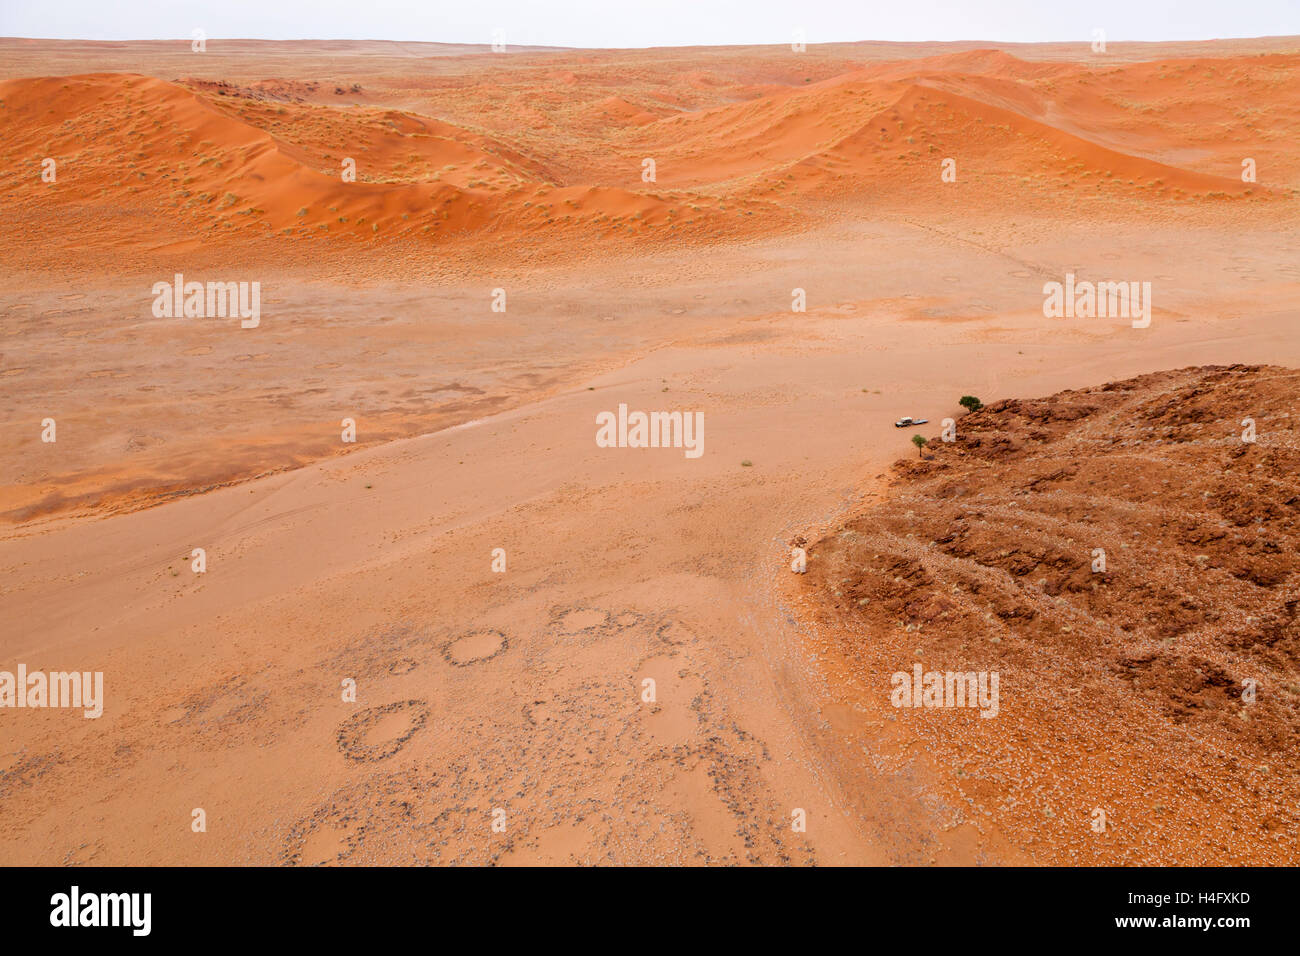 Aerial view from hot air balloon in Namib-Naukluft National Park, Namibia - Stock Image